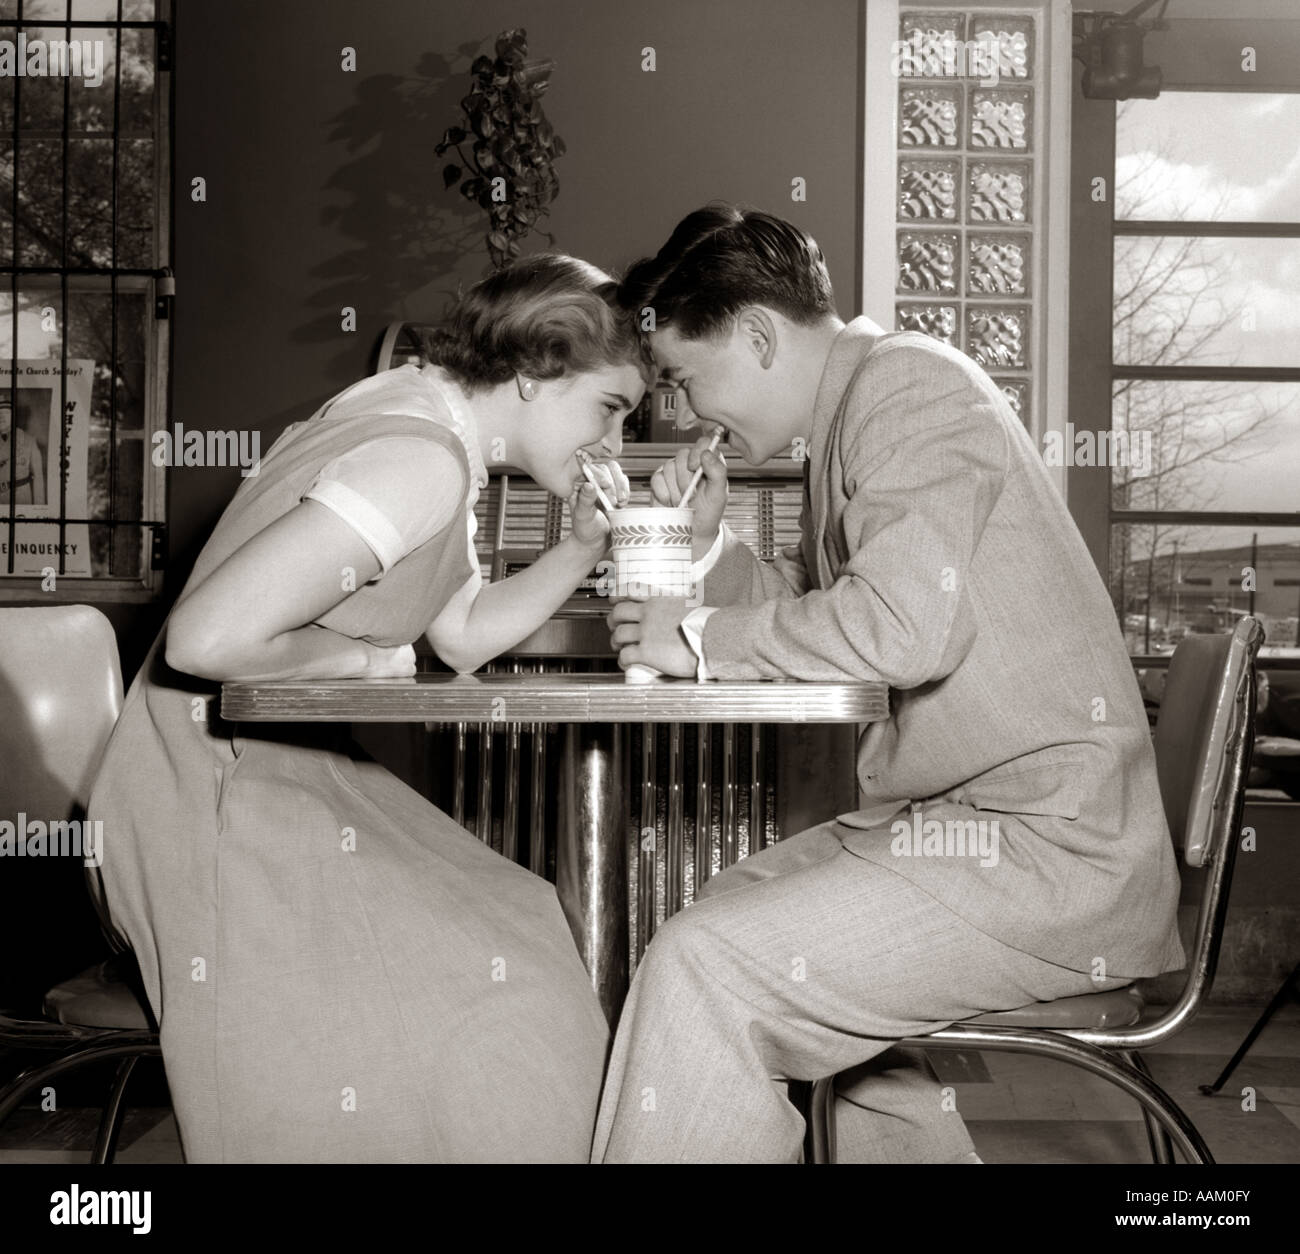 1950s 1960s LAUGHING TEENAGE COUPLE BOY AND GIRL SHARING DRINK TOGETHER WITH TWO STRAWS IN SODA SHOP